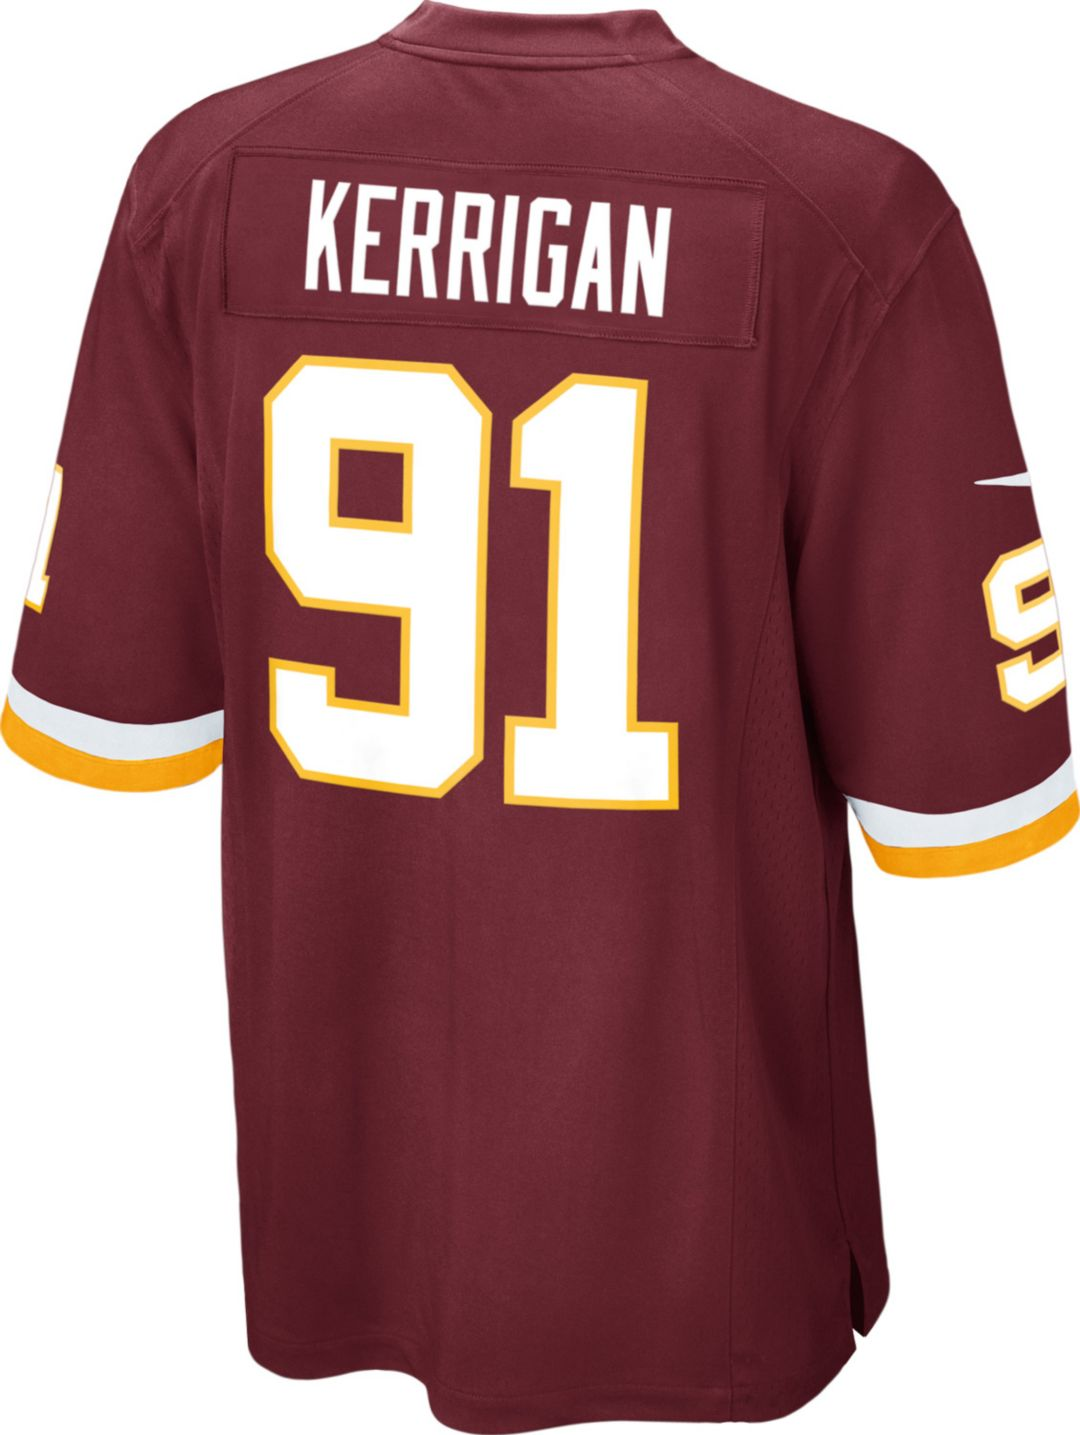 best website 616ce 68a87 Nike Men's Home Game Jersey Washington Redskins Ryan Kerrigan #91